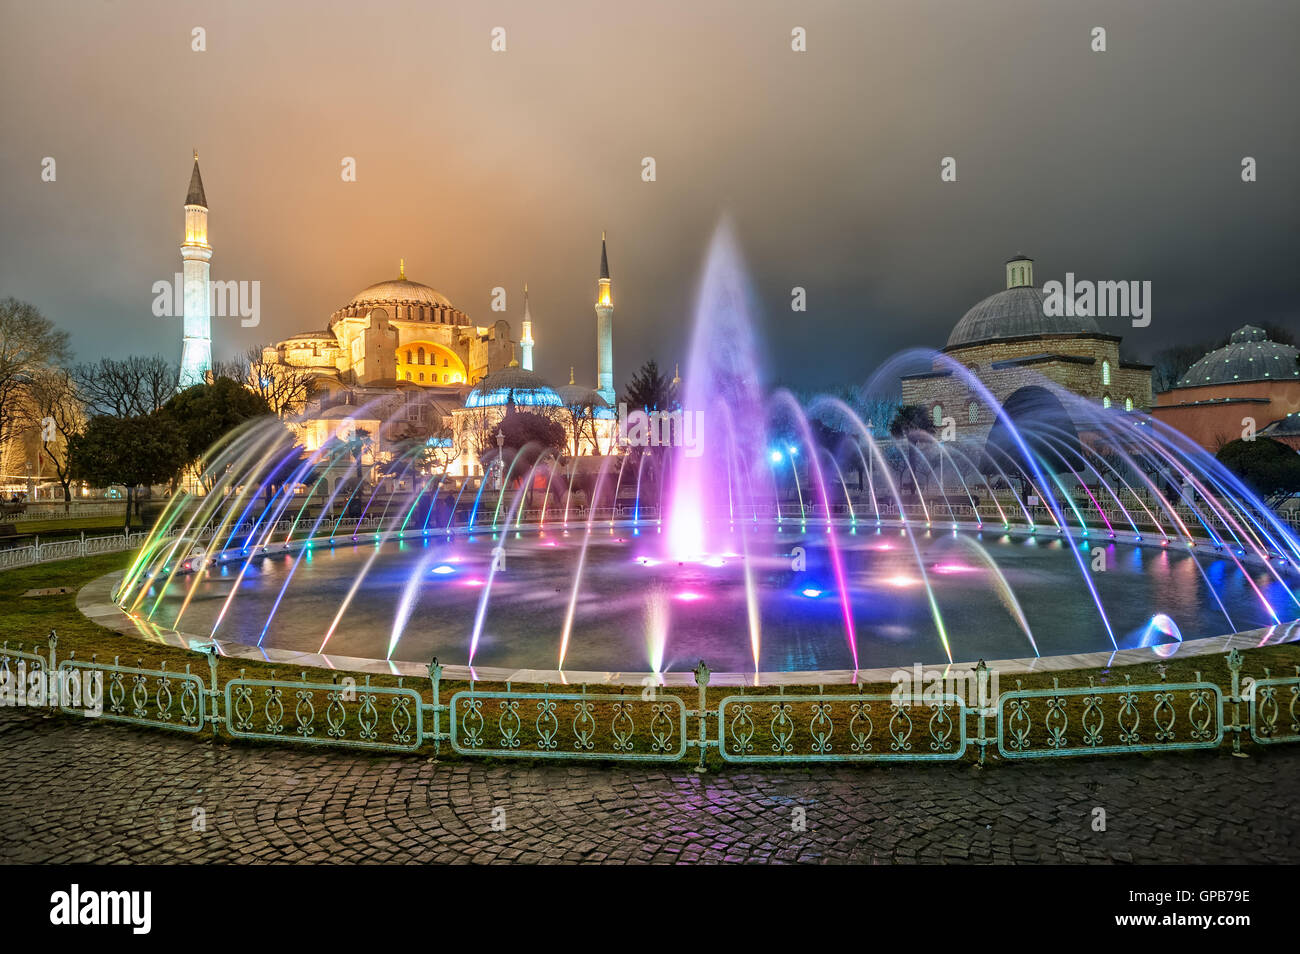 Hagia Sophia and colorful fountain in Sultanahmet park, Istanbul, Turkey, at late evening - Stock Image